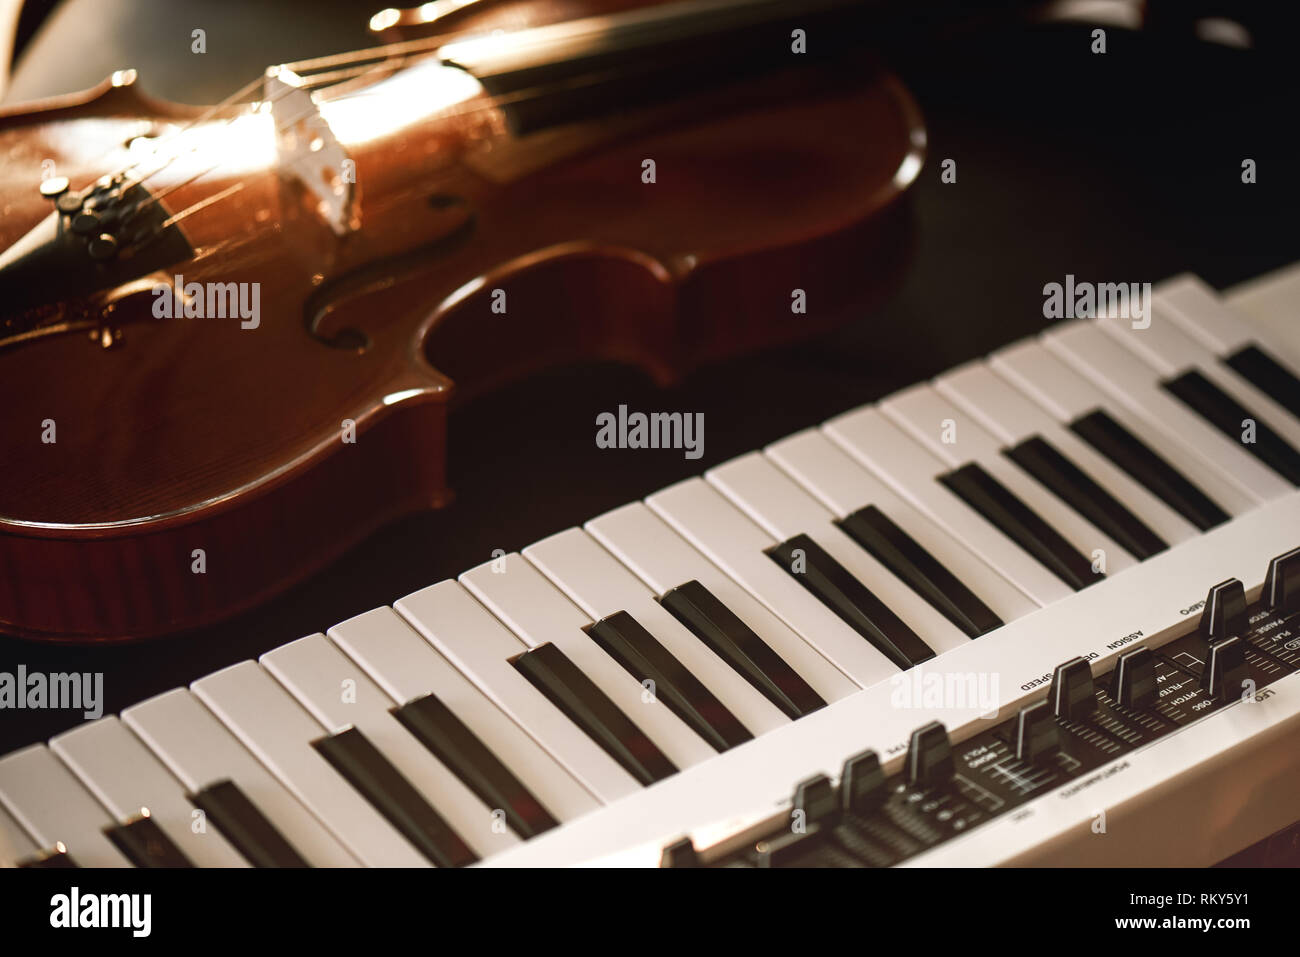 Listening classical music. Close-up view of classical violin instrument lying on a synthesizer. Music concept. Musical instruments. - Stock Image